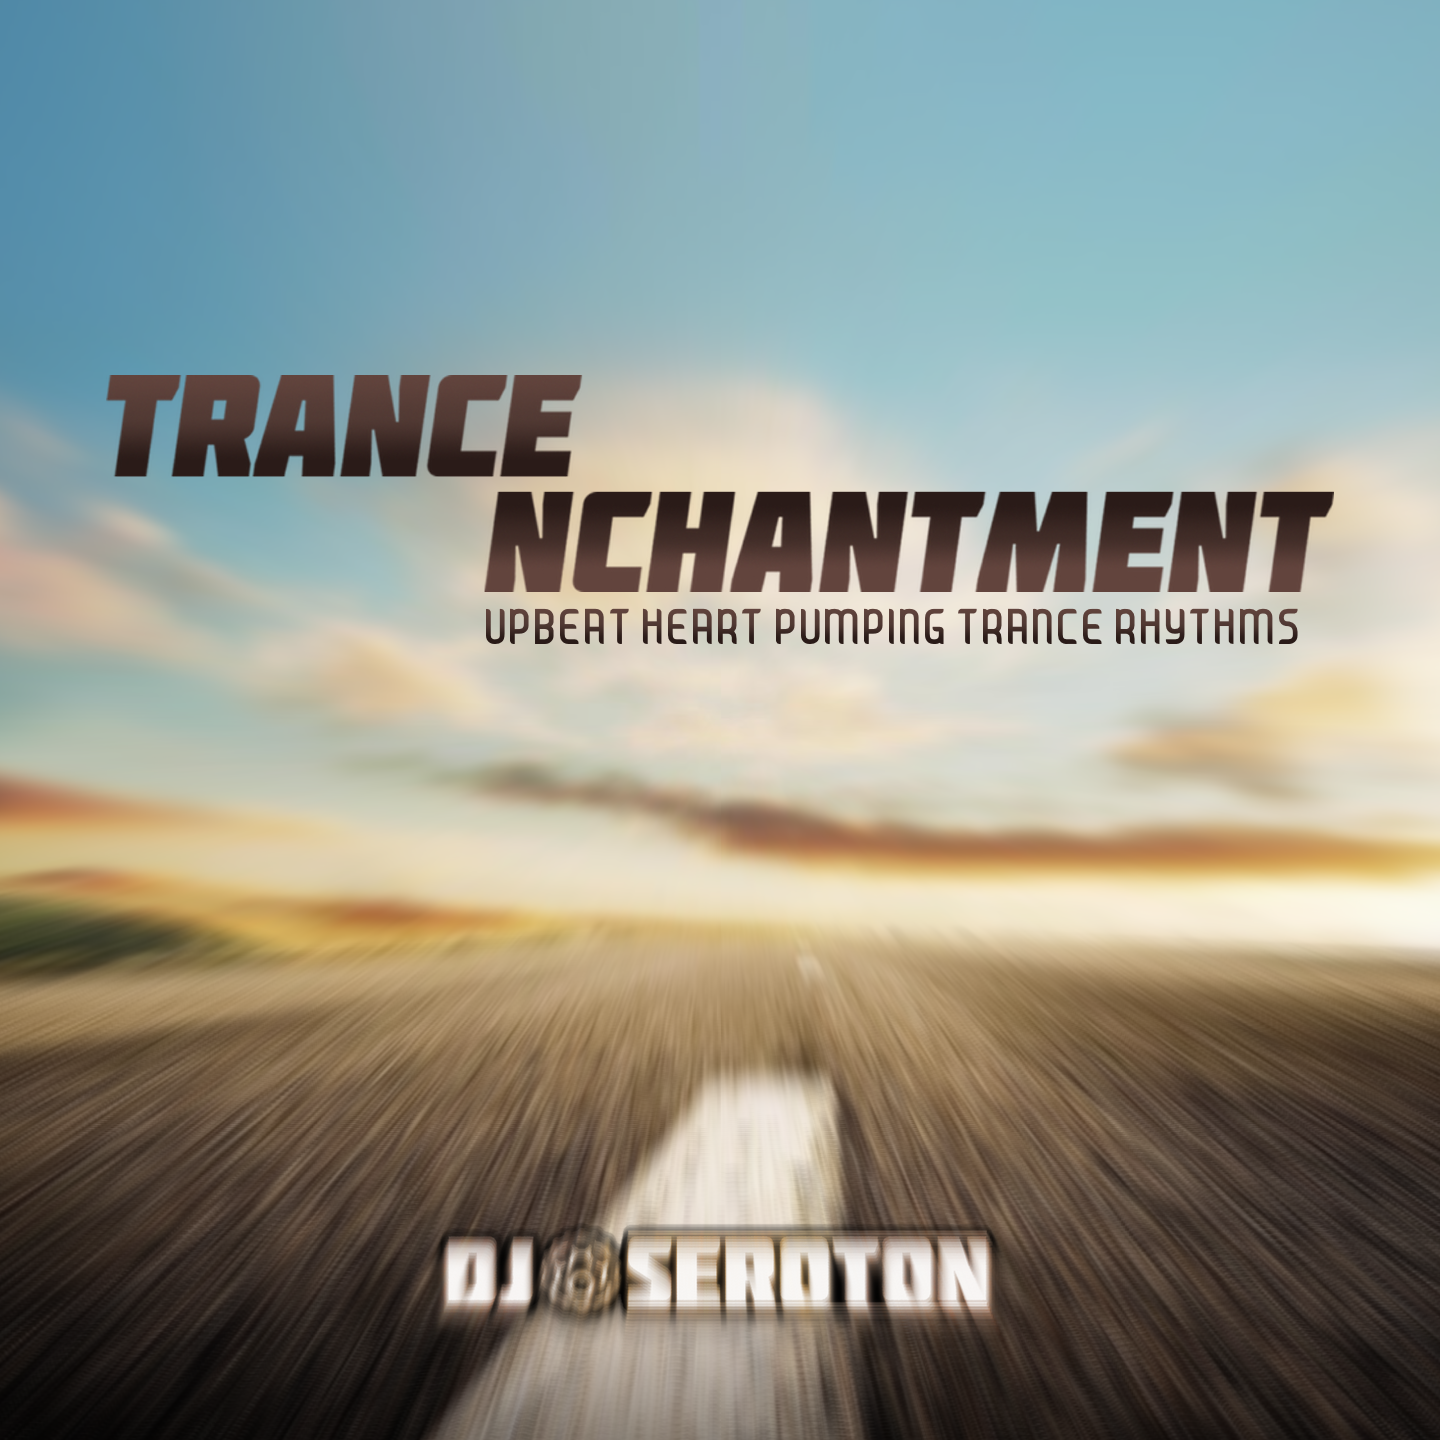 Trance Nchantment: Upbeat Heart Pumping Trance Rhythms - Mixed by DJ Seroton